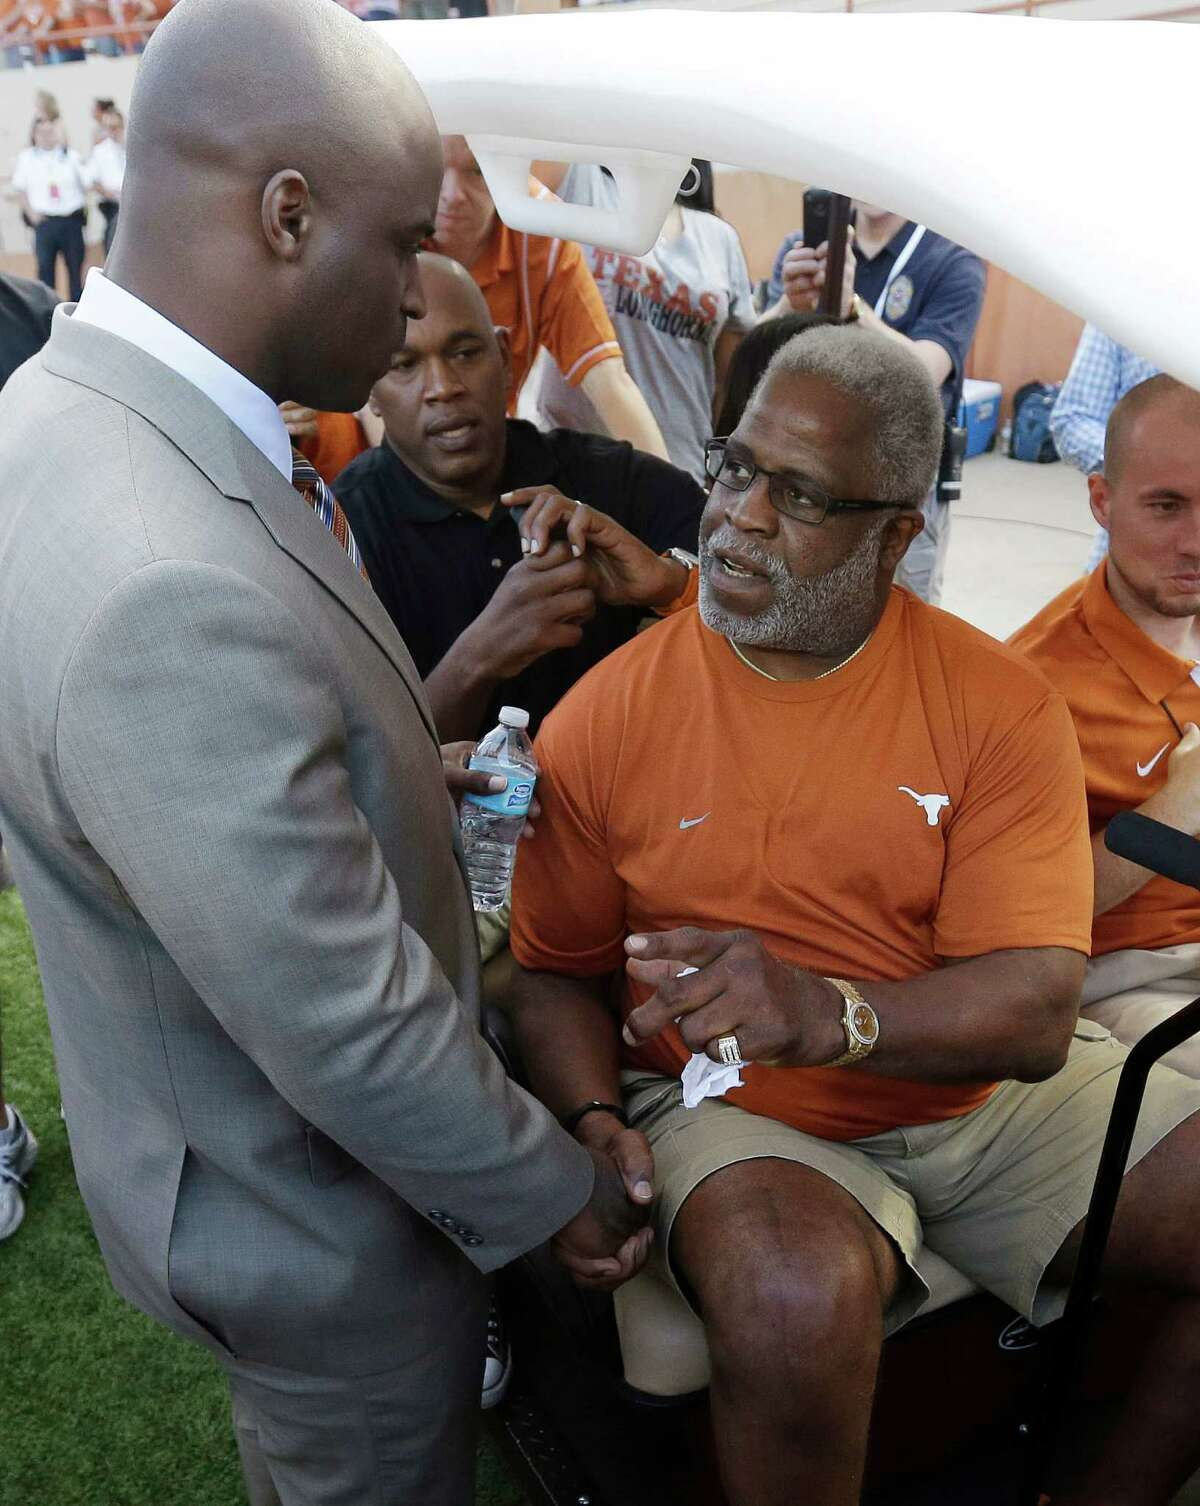 FILE - In this Sept. 8, 2012 file photo, former Texas football player Earl Campbell, right, talks with Ricky Williams, left, as he prepares to take part in the coin flip prior to an NCAA college football game between Texas and New Mexico in Austin, Texas. The NFL Hall of Famer and former Heisman Trophy winner said Tuesday, Sept. 18, 2012, he is undergoing nerve treatment after doctors ruled out concerns that he might have Lou Gehrigís disease. (AP Photo/Eric Gay)